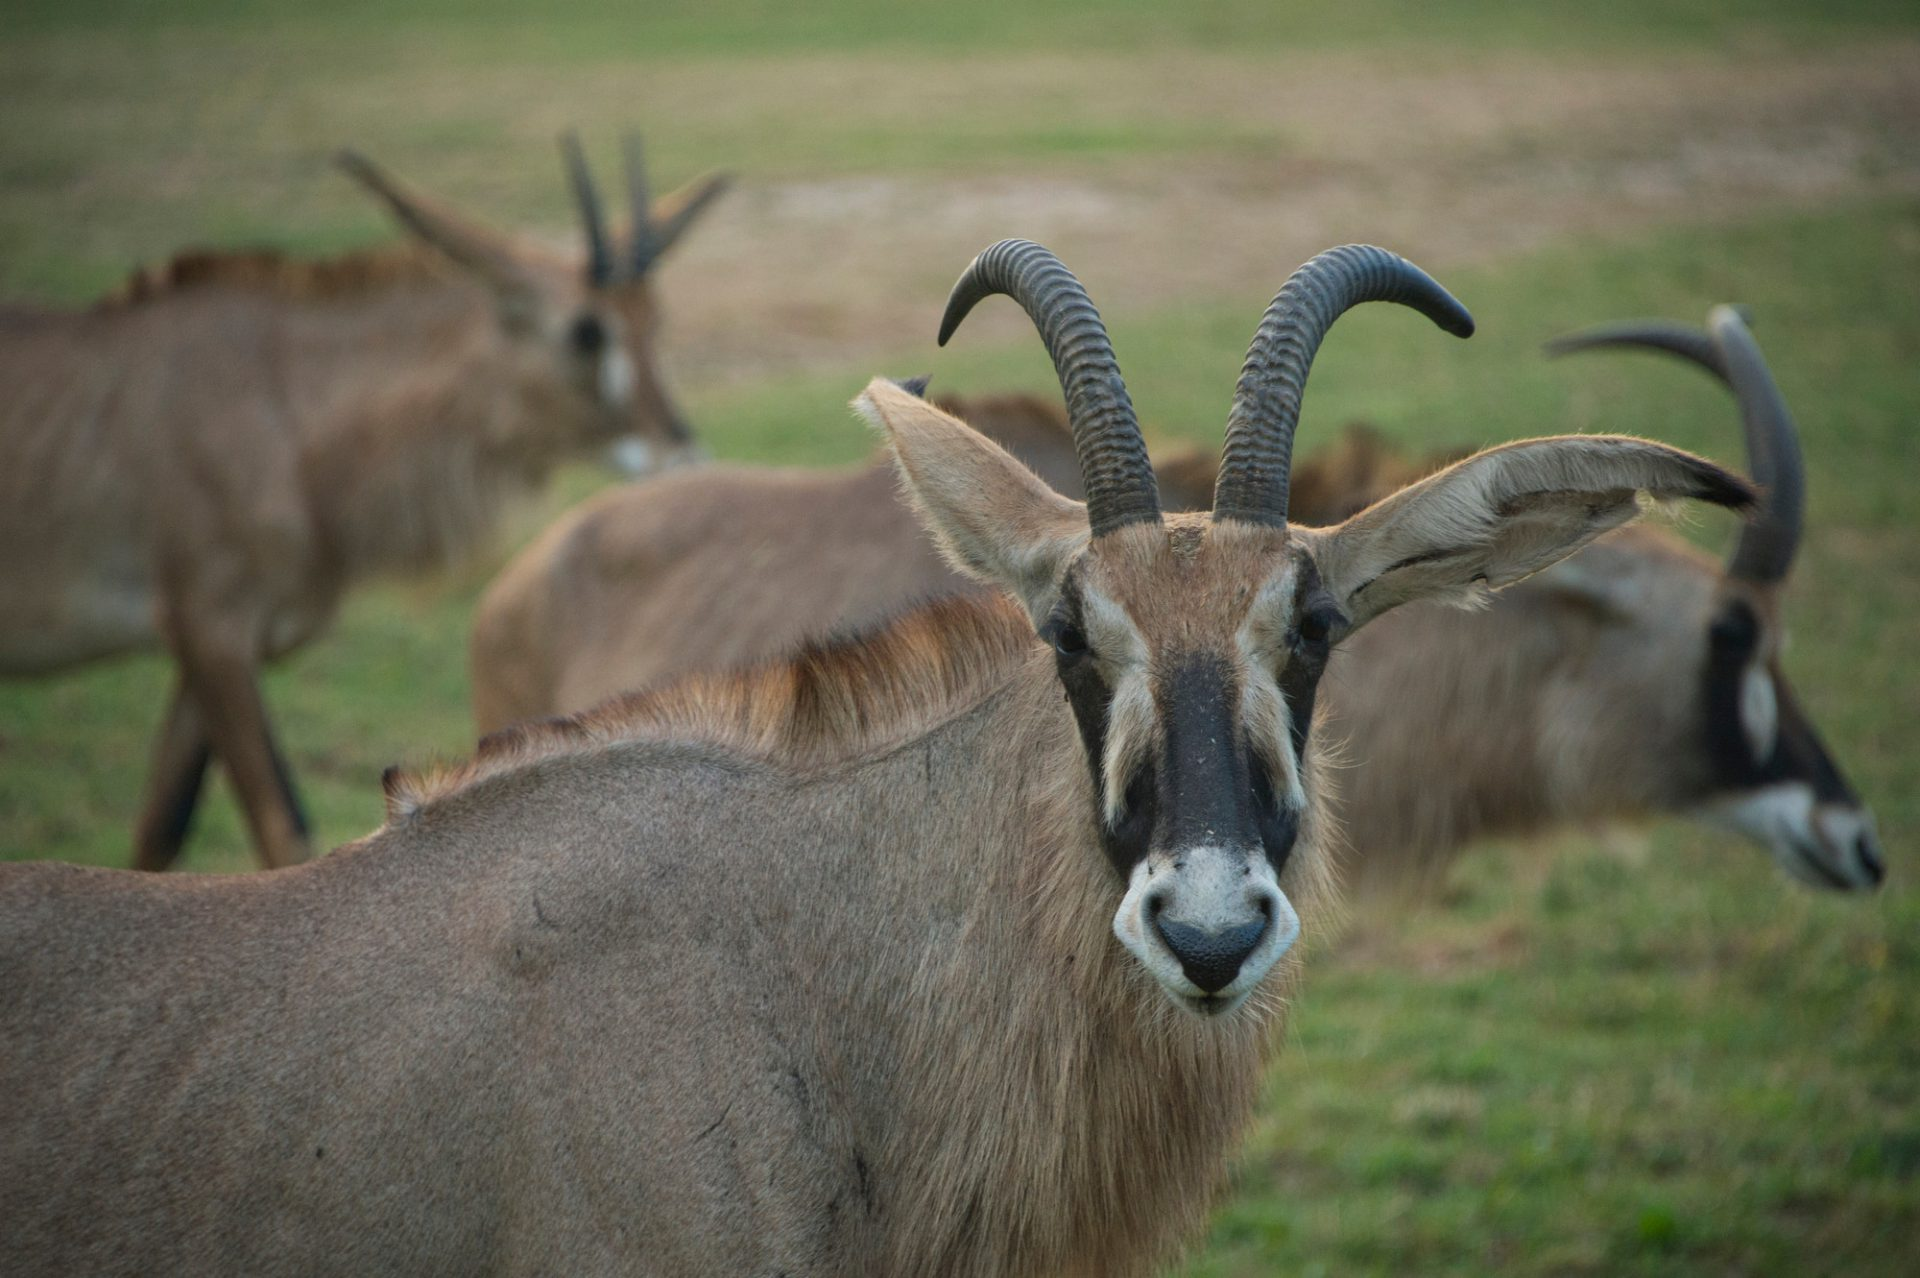 Photo: Roan antelope (Hippotragus equinus) at Safari Park Dvur Kralove.